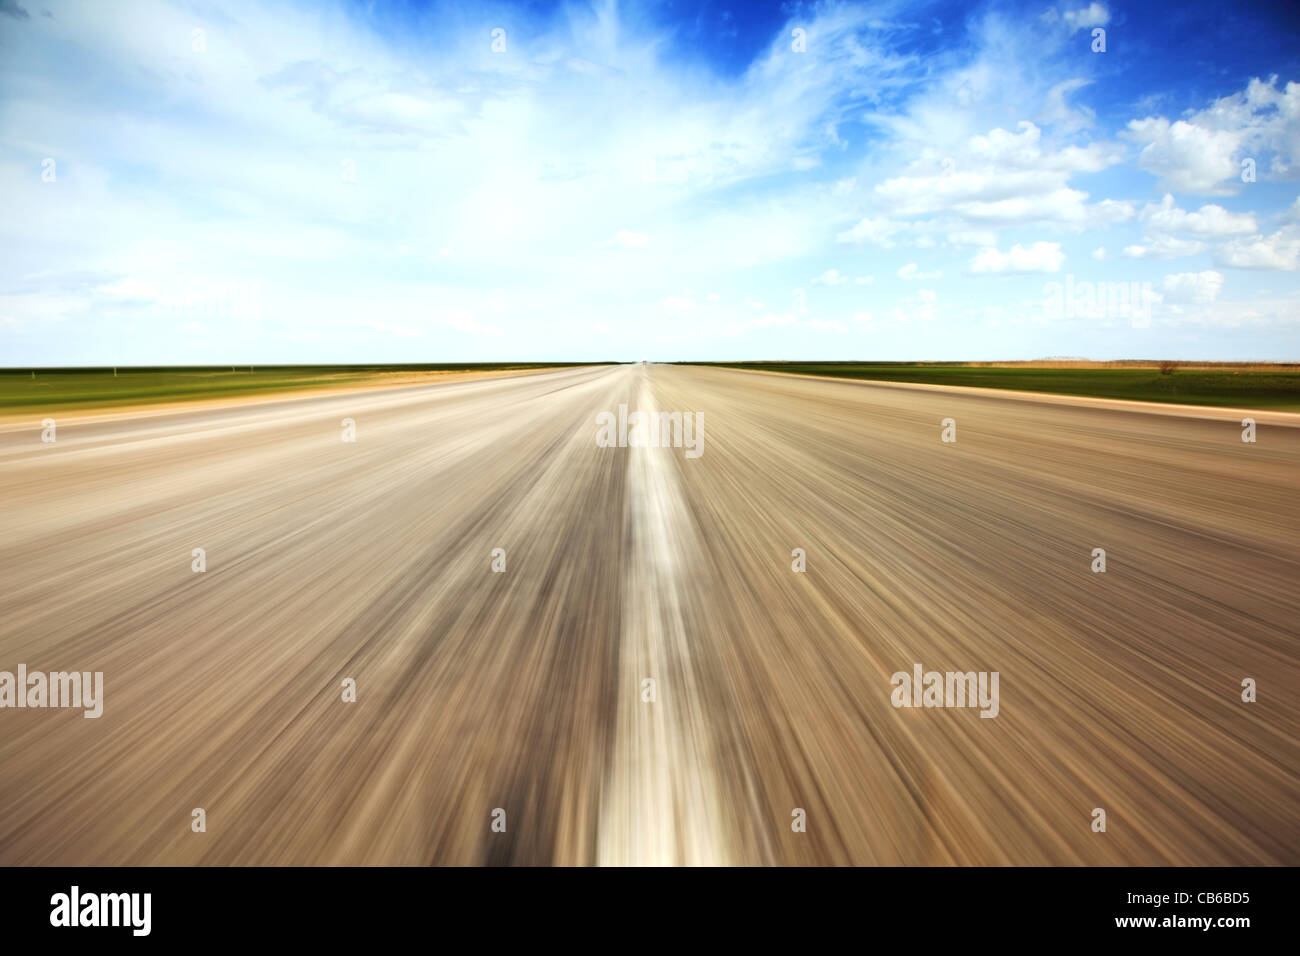 Speed concept. Empty countryside old road stretches in perspective. - Stock Image